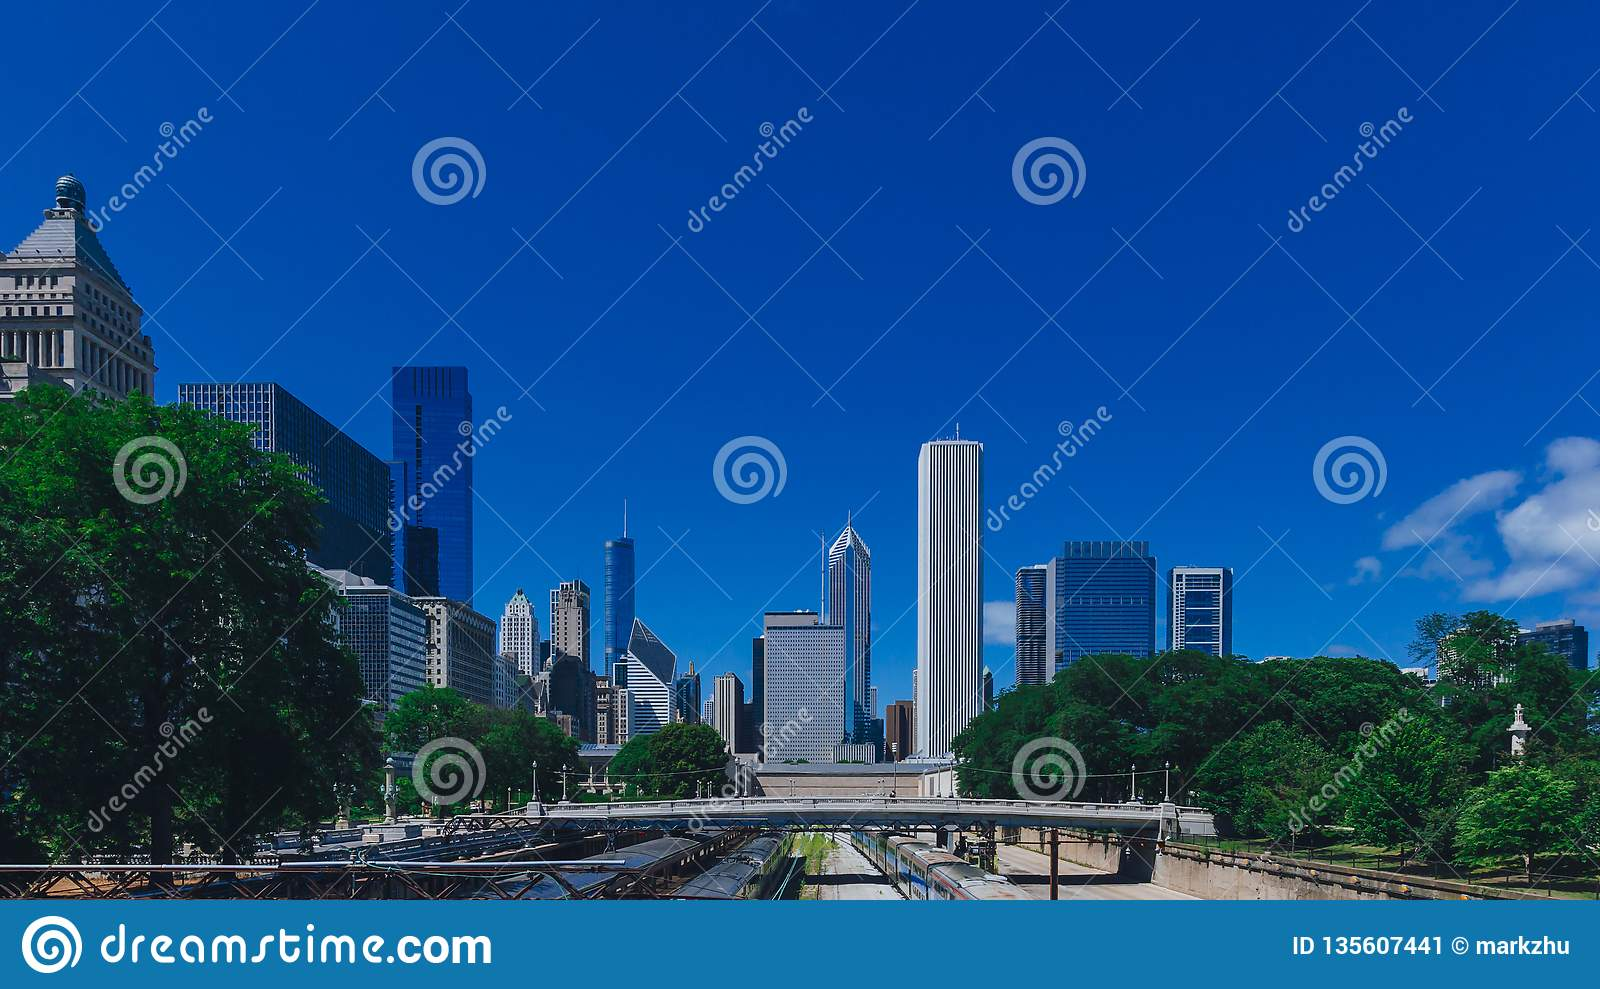 Skyline of Chicago, USA with bridge over train tracks